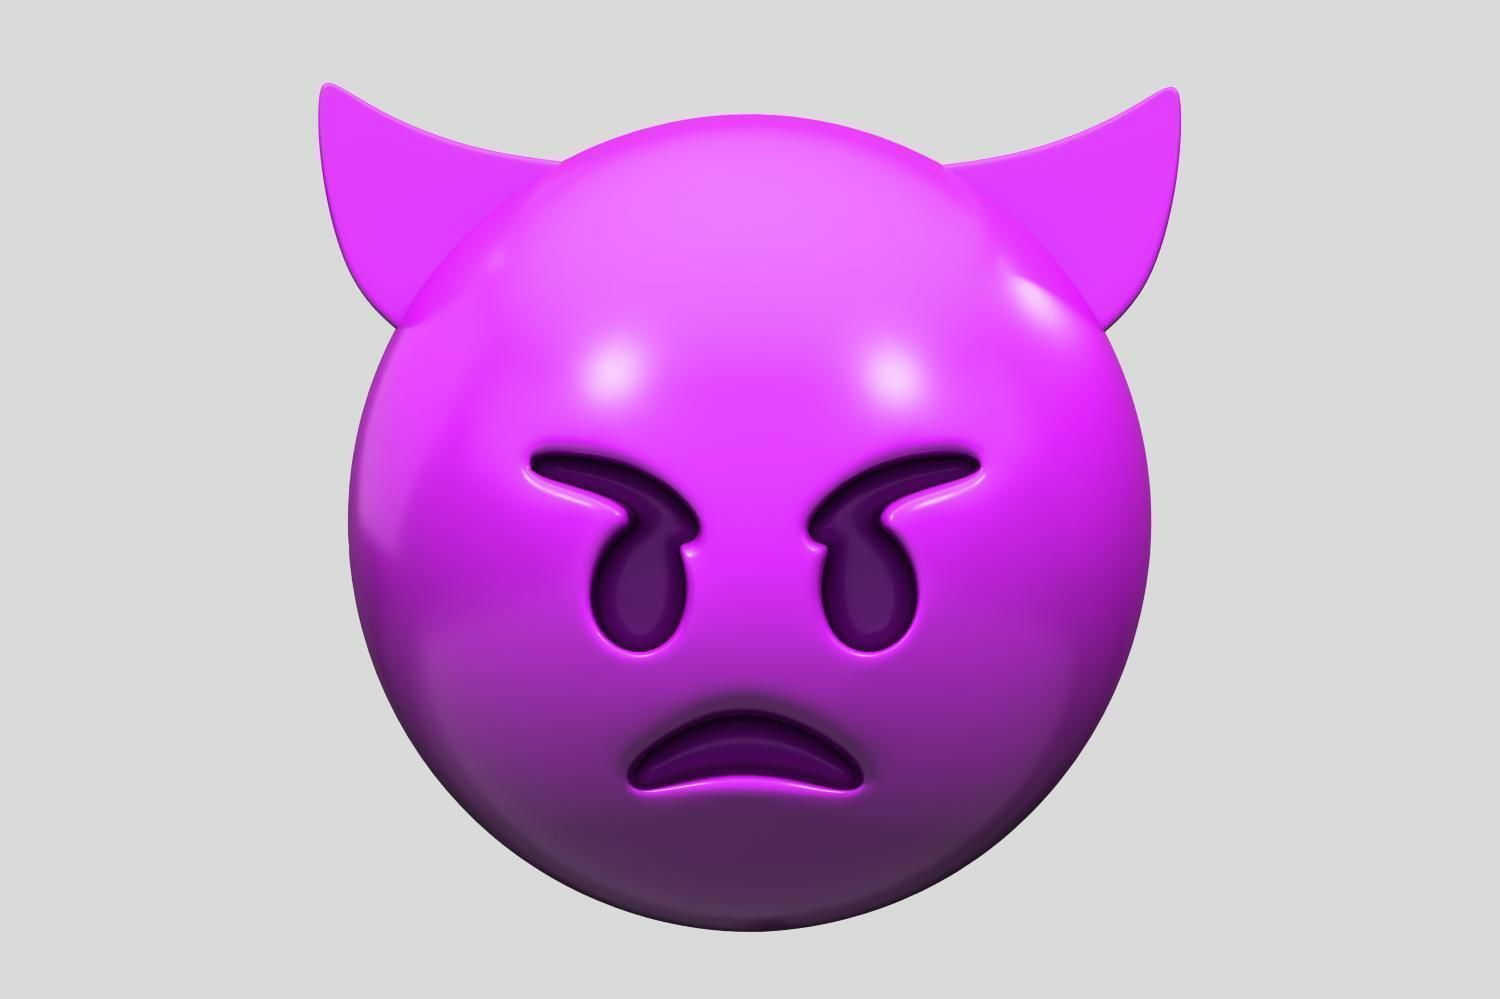 Emoji Angry Face with Horns